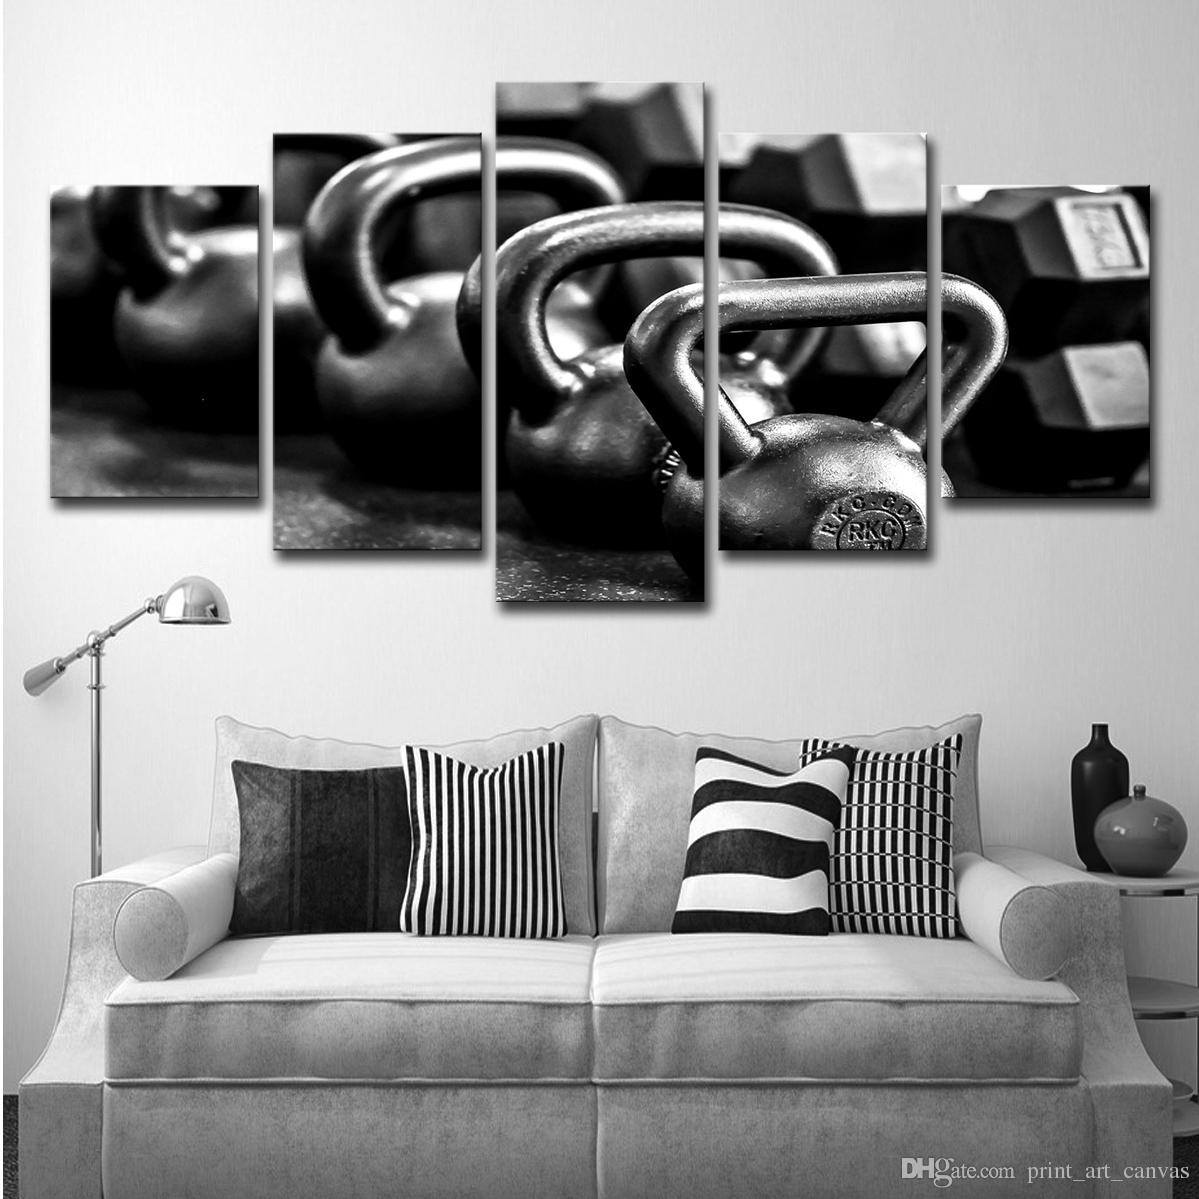 Canvas Painting 5 Piece Canvas Art Gym Dumbells Poster Metal Black and White Home Decor Wall Pictures for Living Room